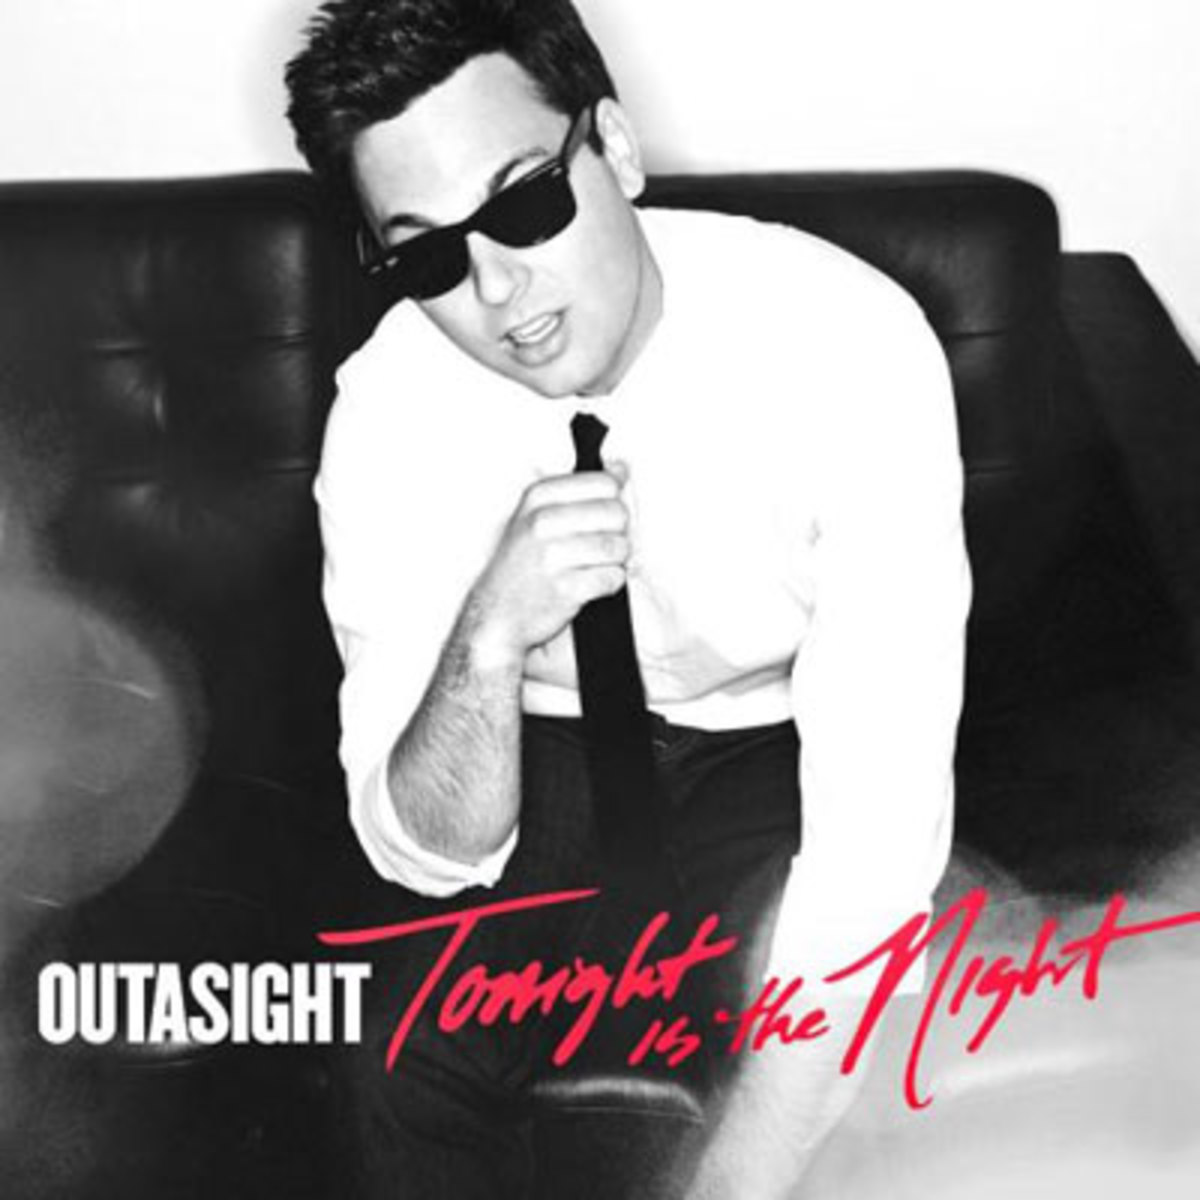 outasight-tonightisthenight.jpg